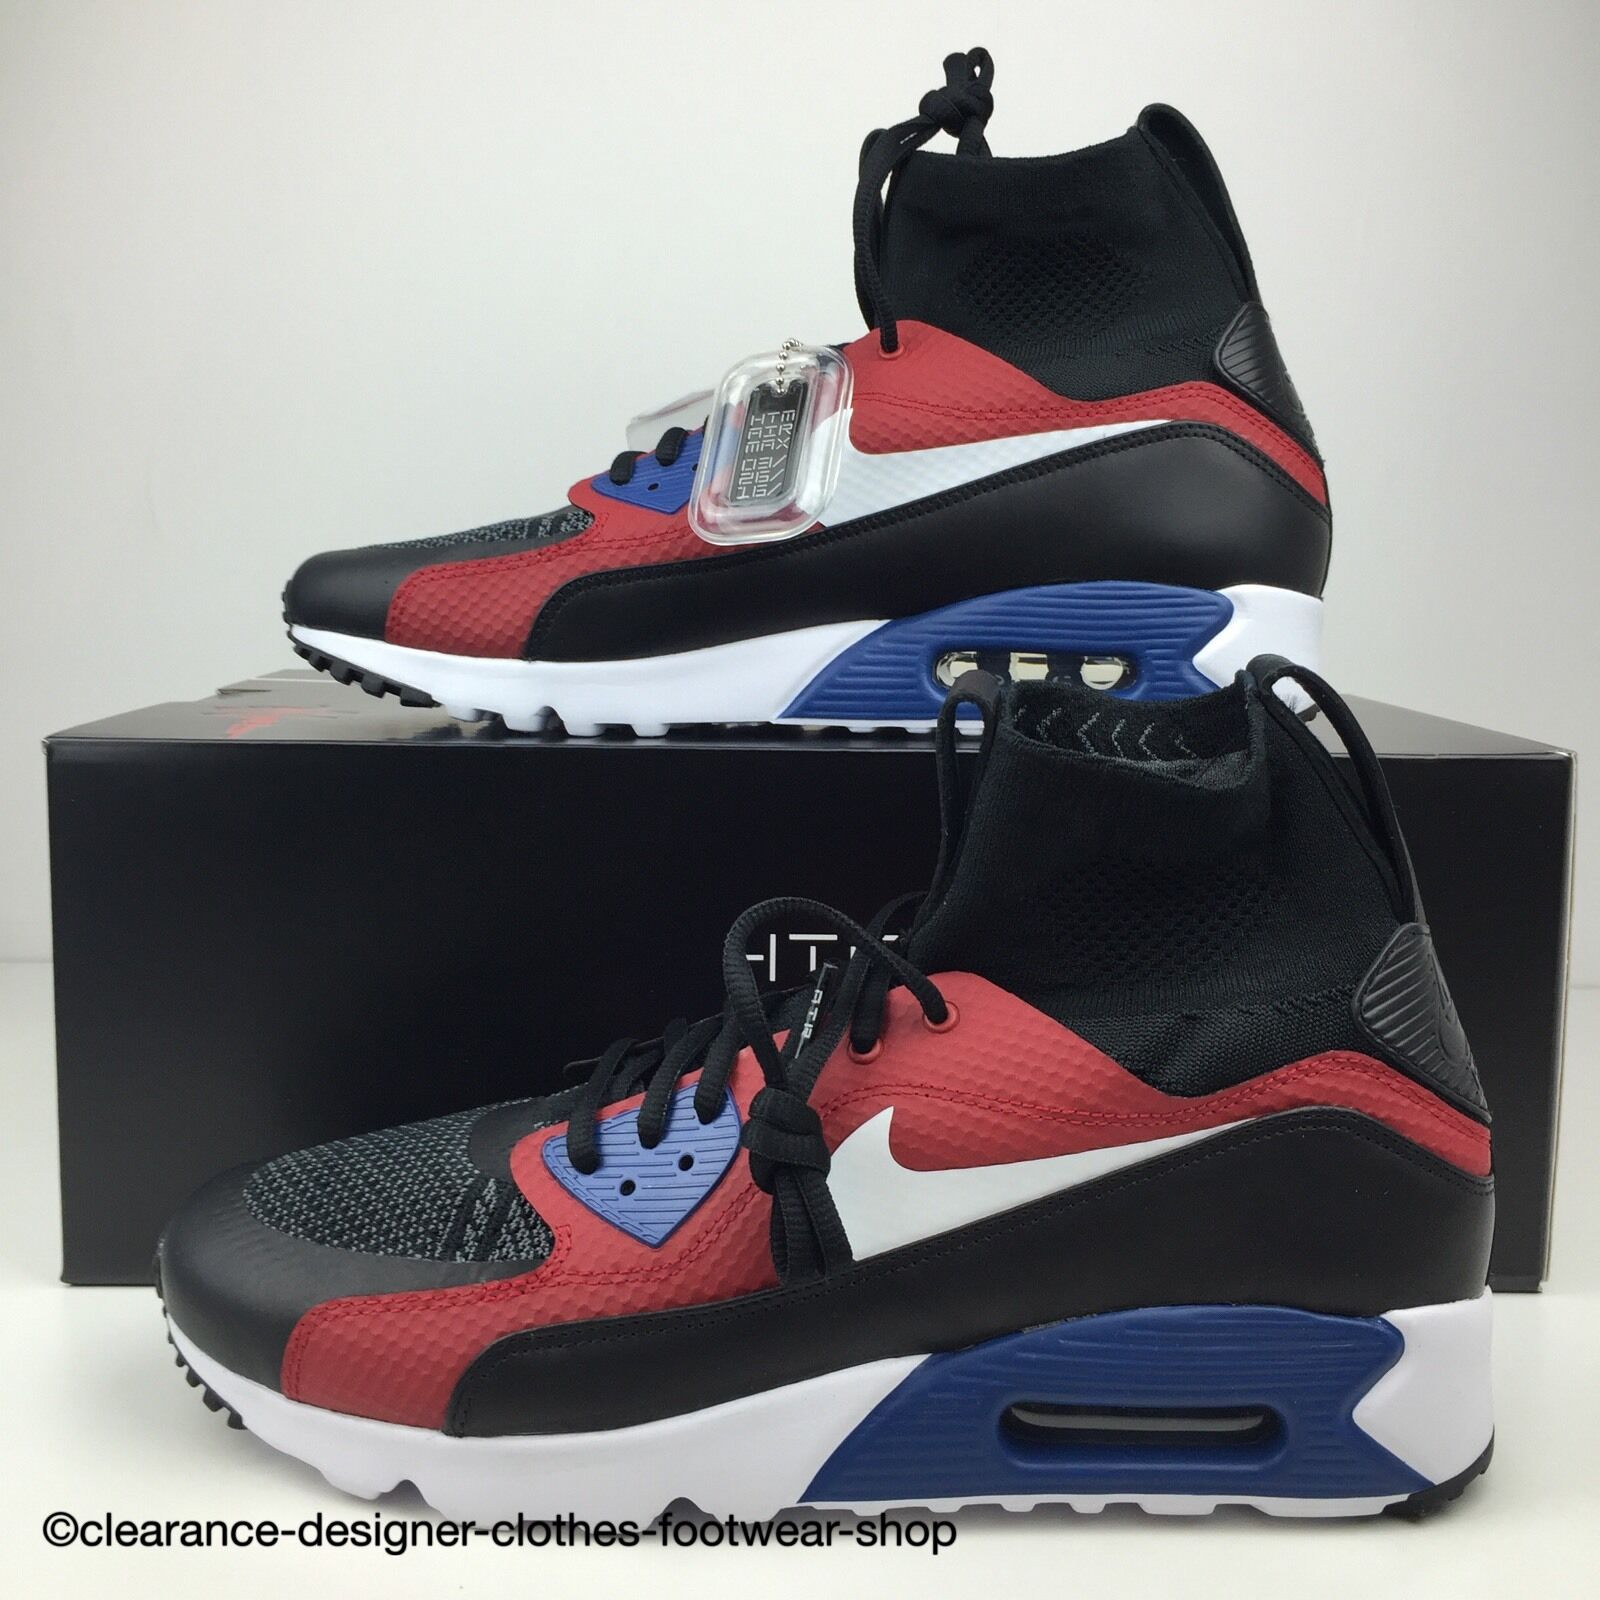 00225b6bd189fa HTM NIKE AIR MAX 90 ULTRA SUPERFLY TRAINERS MENS HTM MAX DAY TINKER SHOES  UK 10